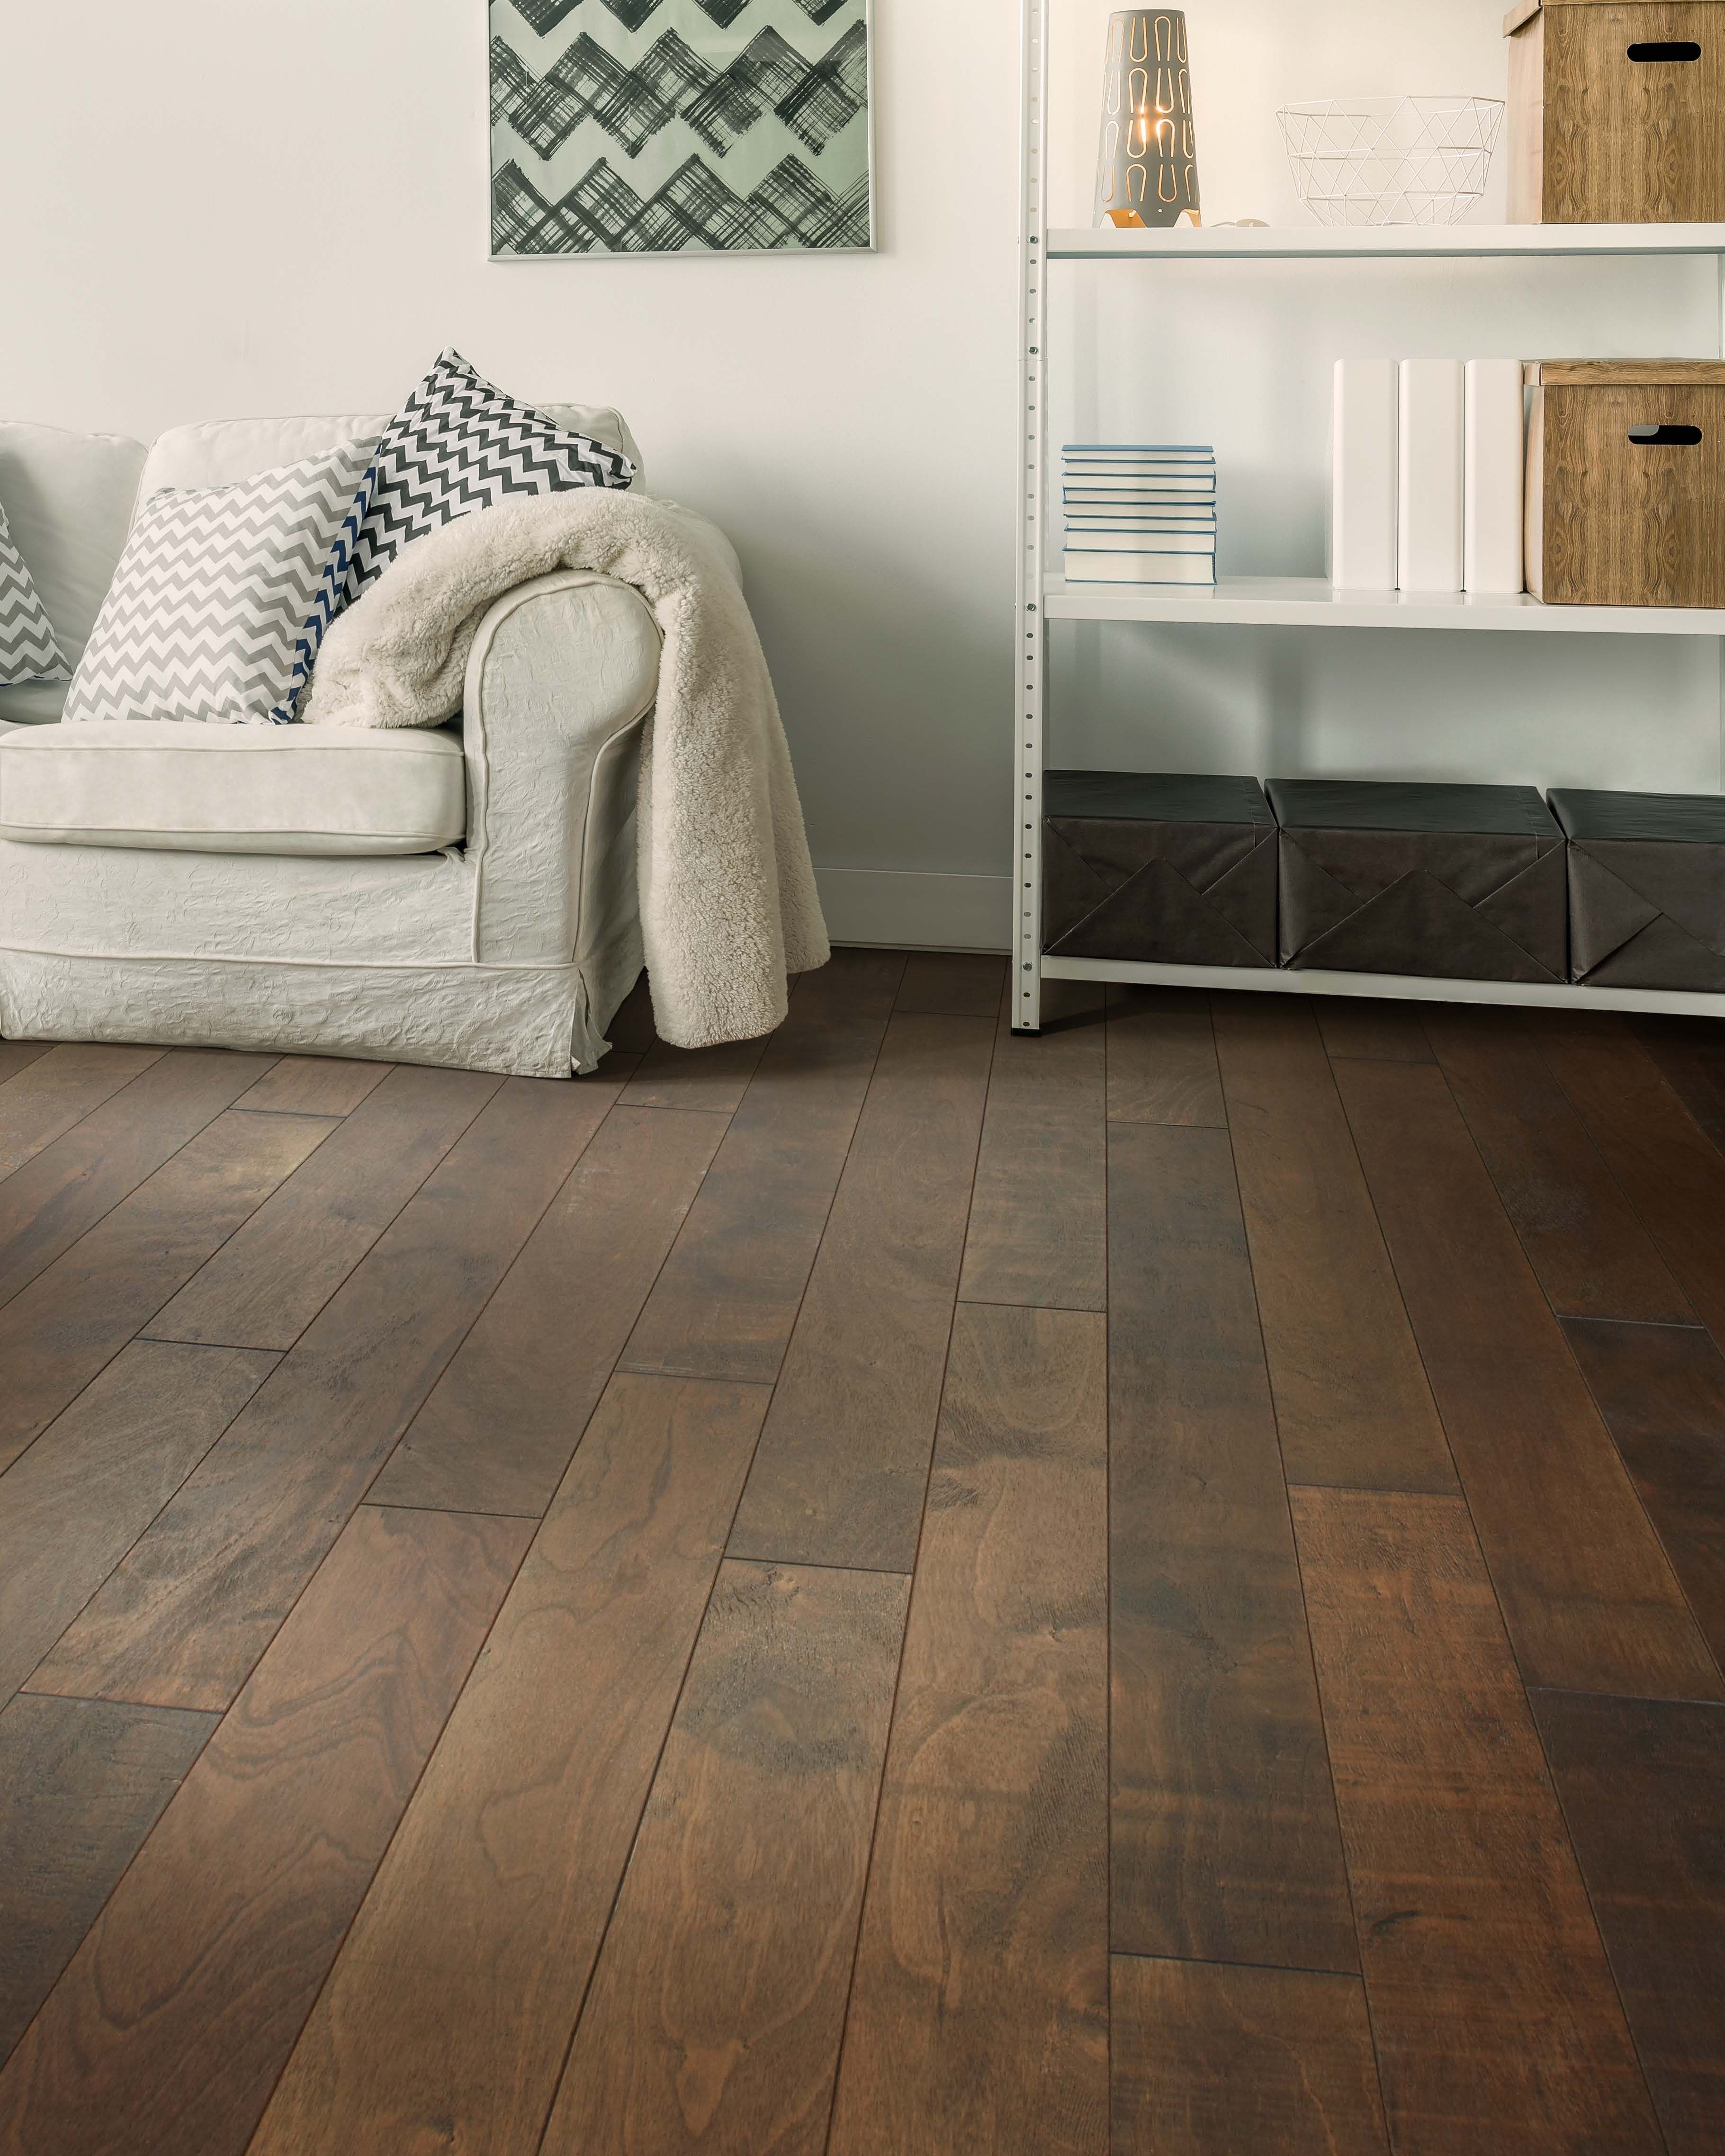 Tobacco Features A Classic Brown Tone And Natural Saw Blade Accent Marks That Create An Authentic Wood Visual Hardwood Wood Flooring Hardwood Design Home